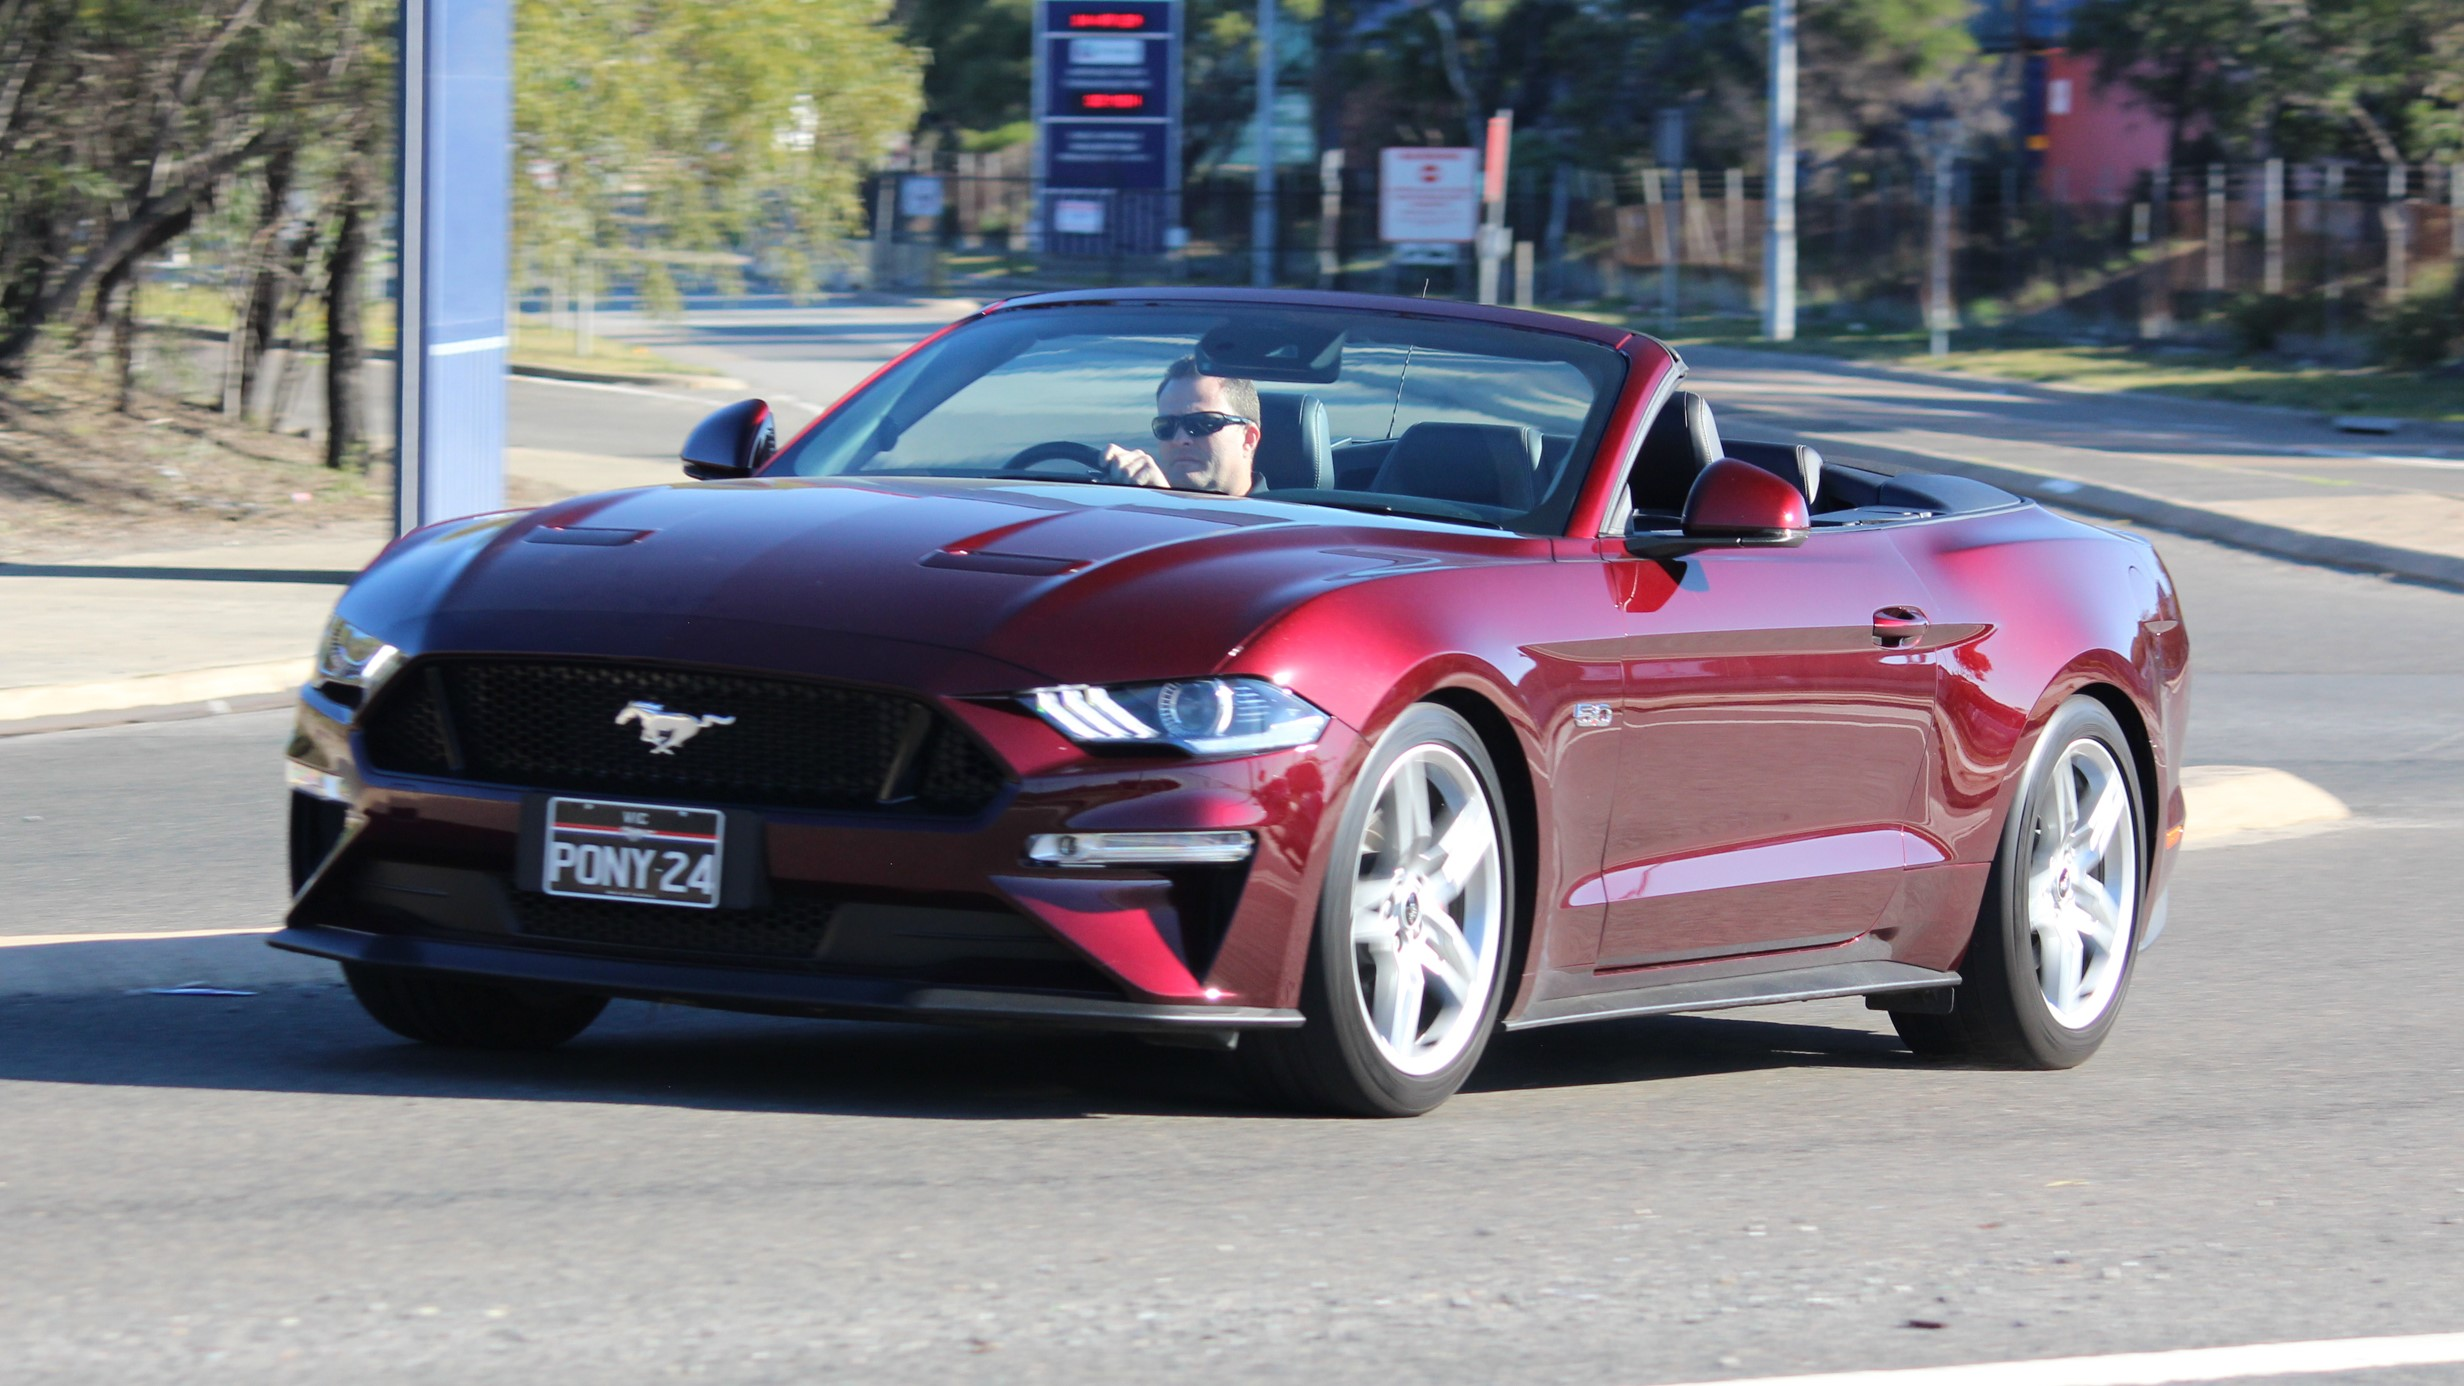 2018 Ford Mustang Convertible she says, he says review